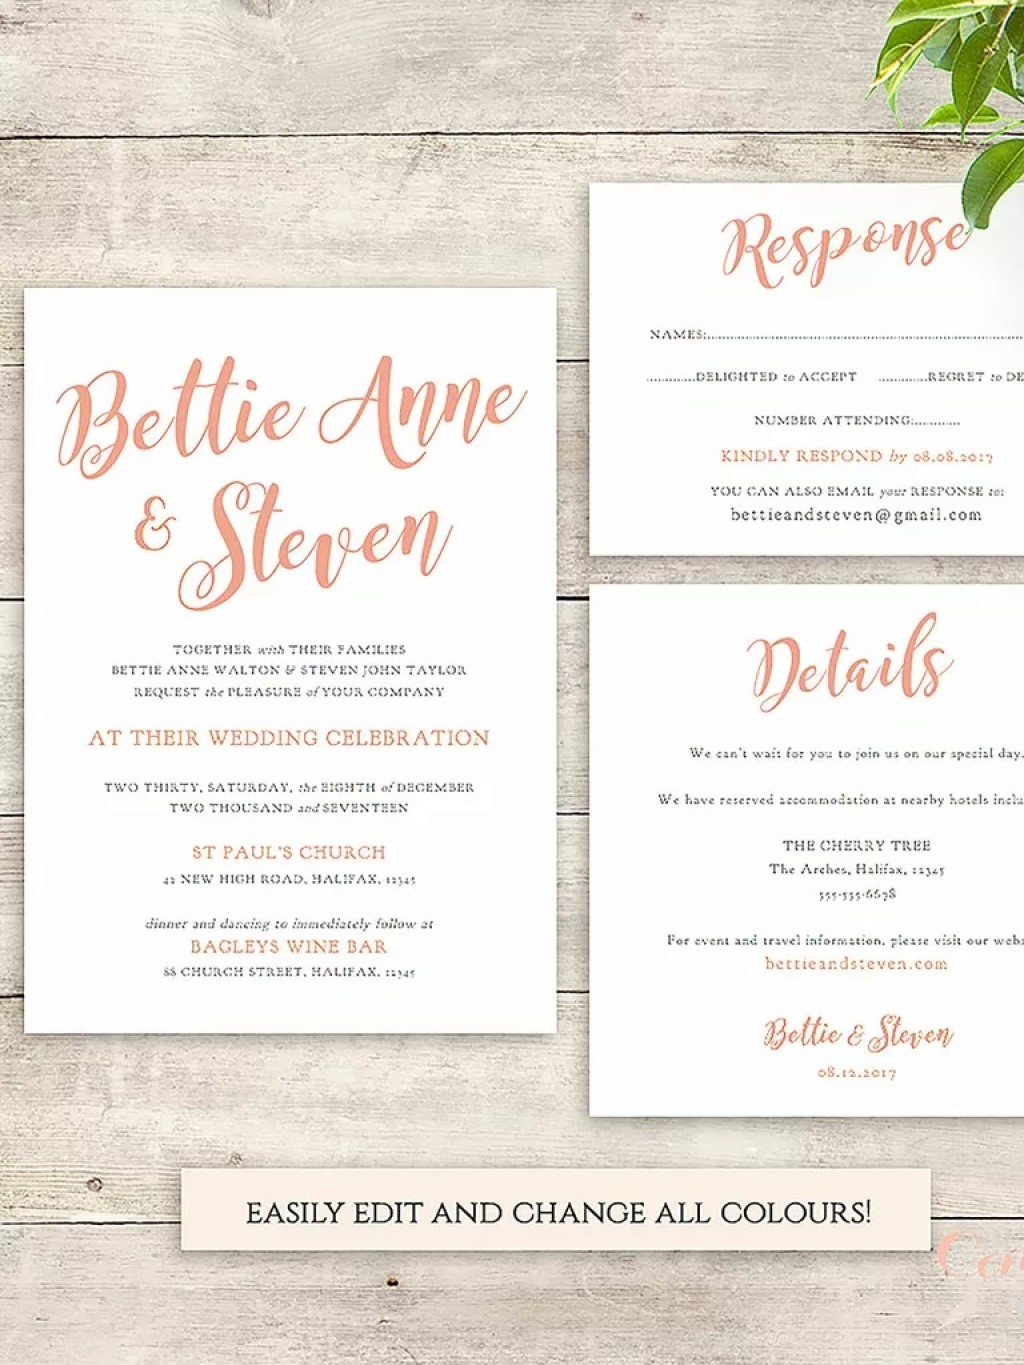 006 Amazing Wedding Invite Wording Template Photo  Templates Chinese Invitation Microsoft Word From Bride And Groom Example InvitingLarge